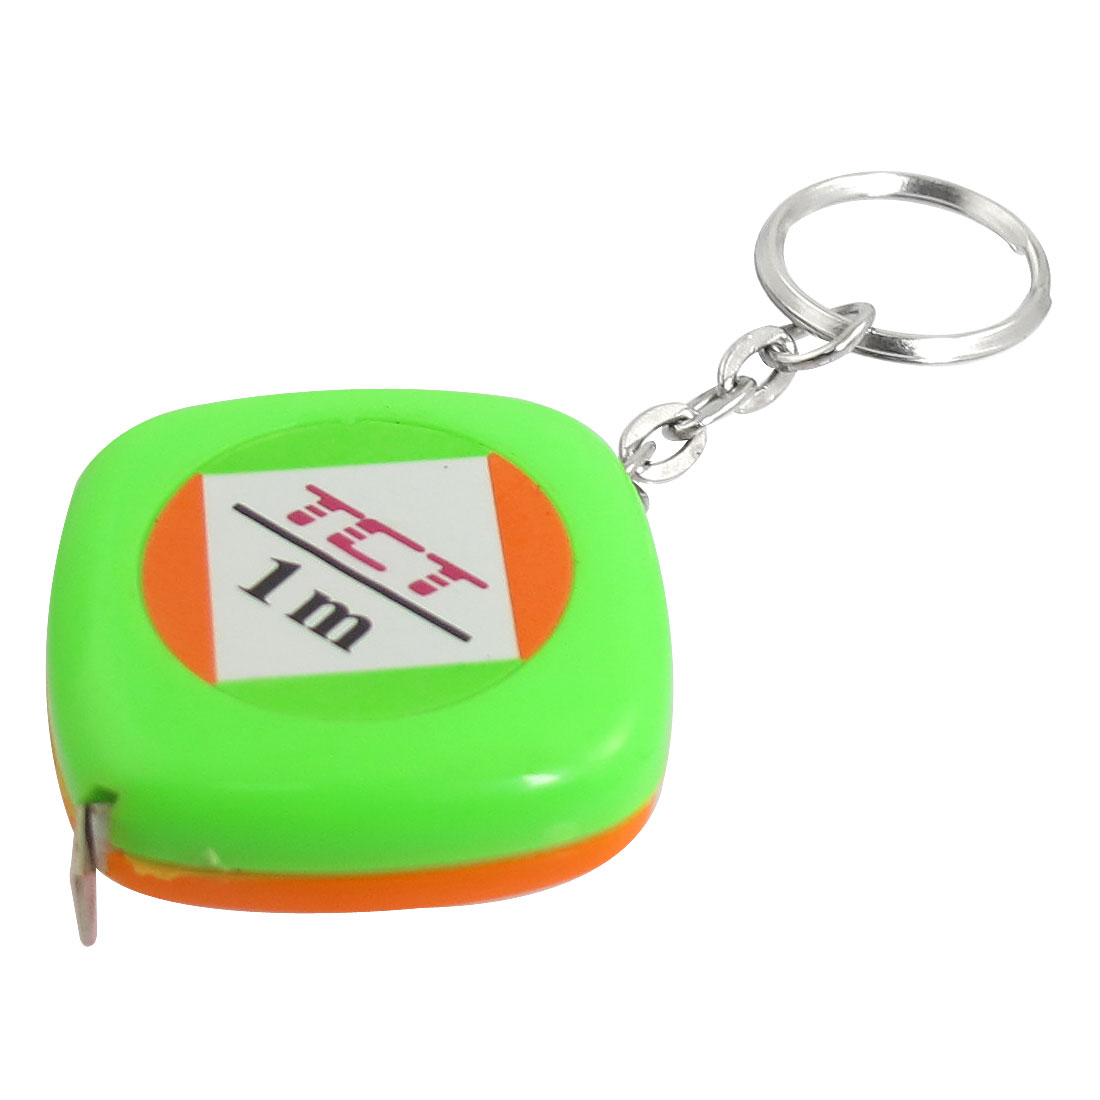 1M Length Green Orange Plastic Shell Retractable Measure Tape w Keyring